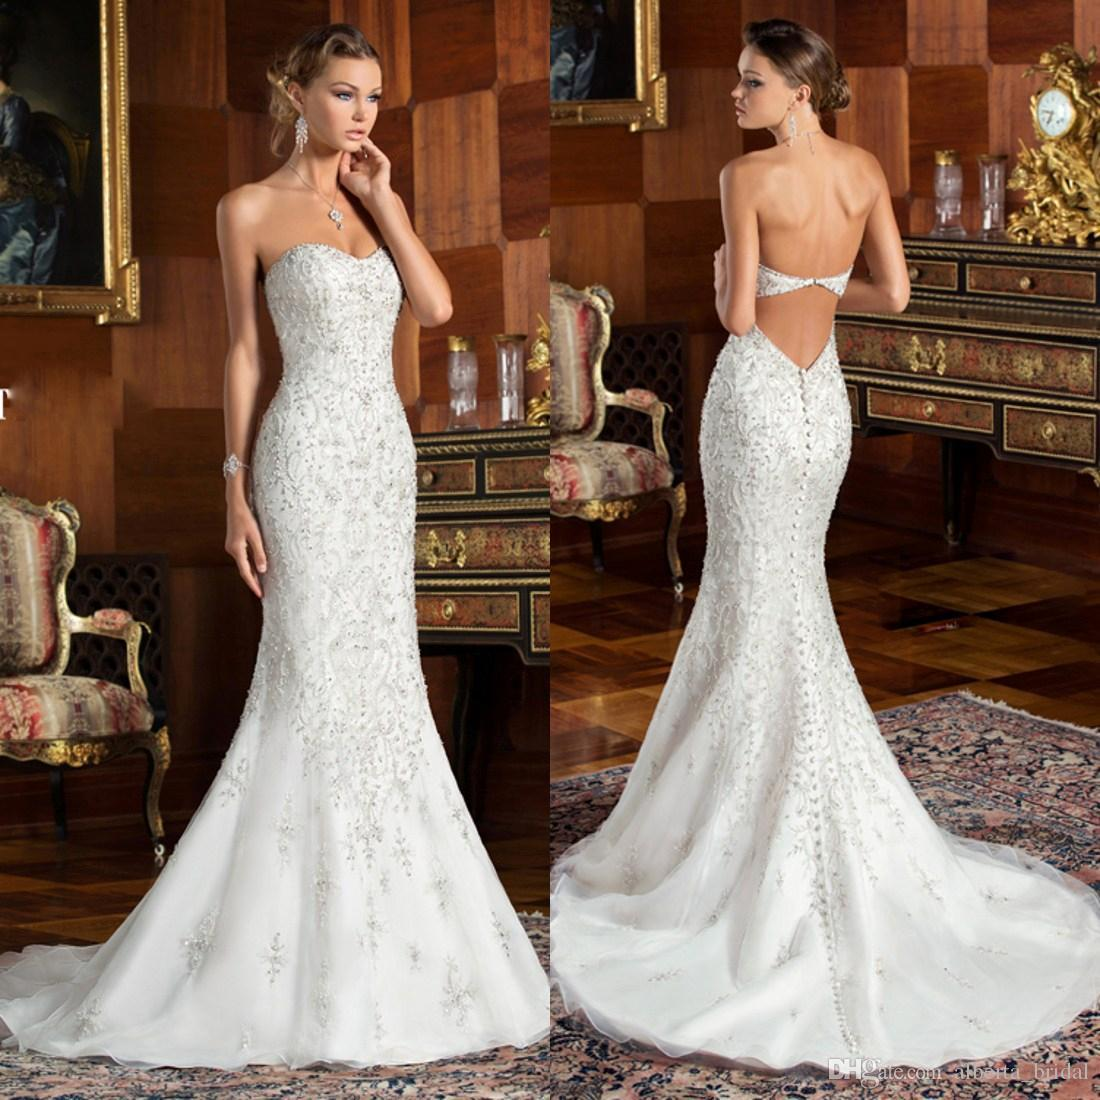 Bling strapless cheap long mermaid lace wedding dresses for Strapless wedding dresses with bling